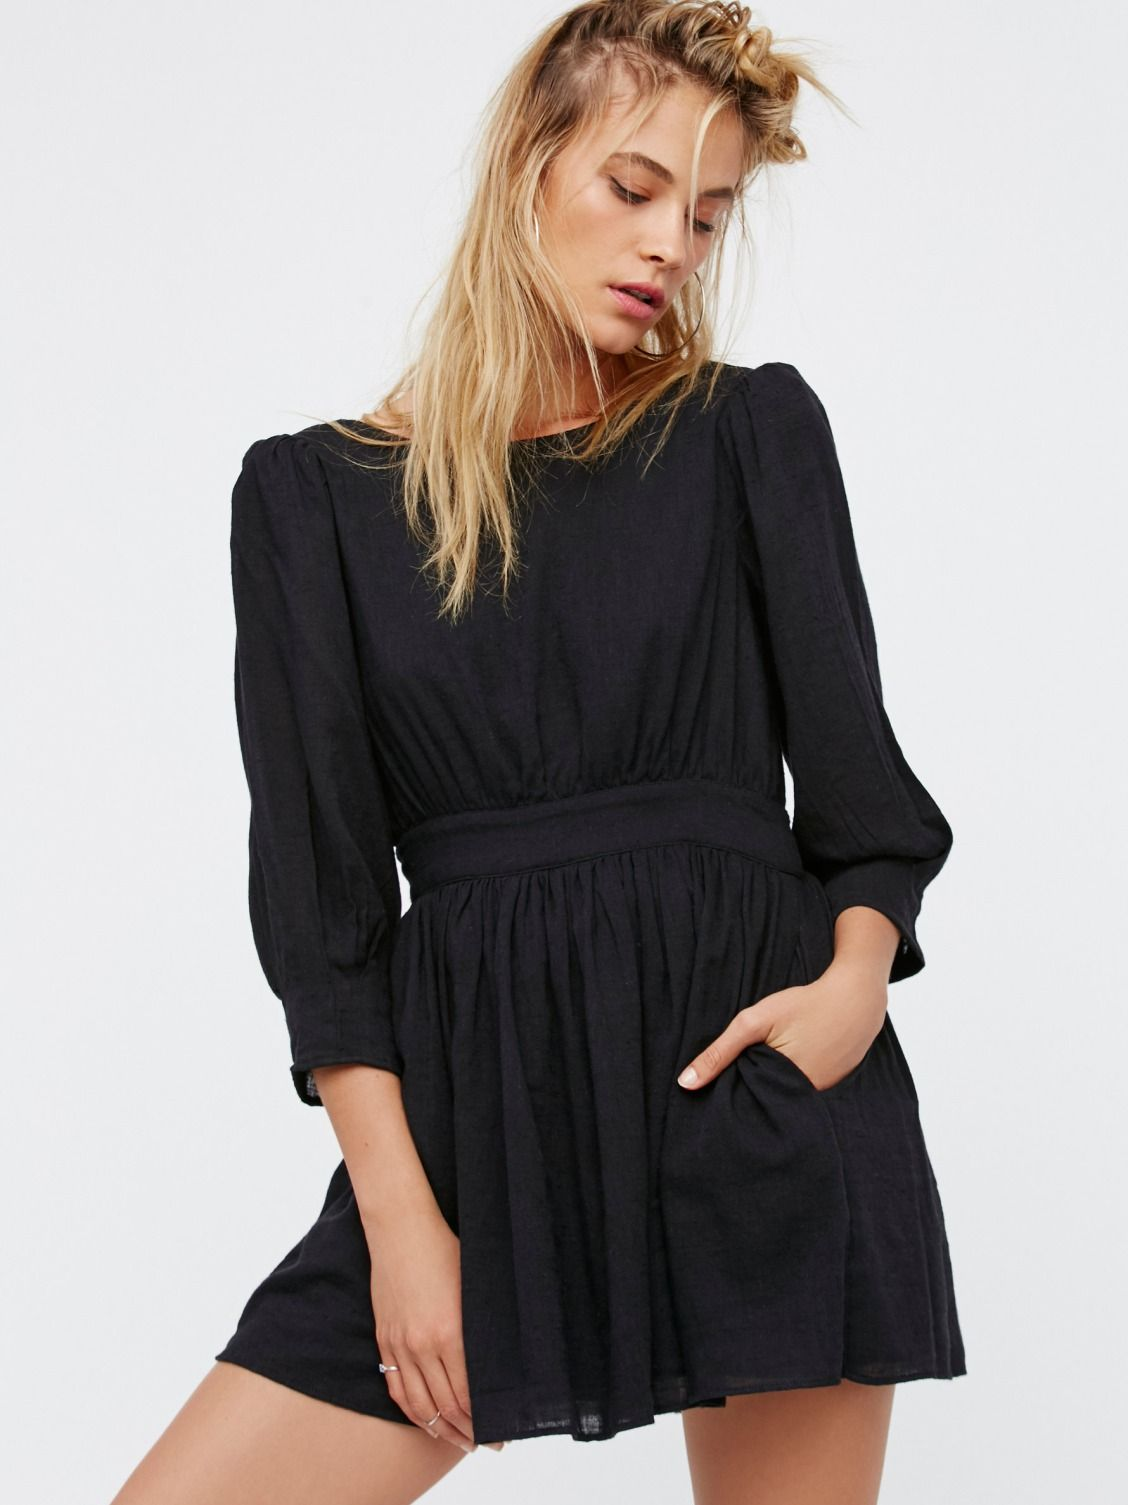 522be1b28c8 Endless Summer Antigua Mini Dress at Free People Clothing Boutique